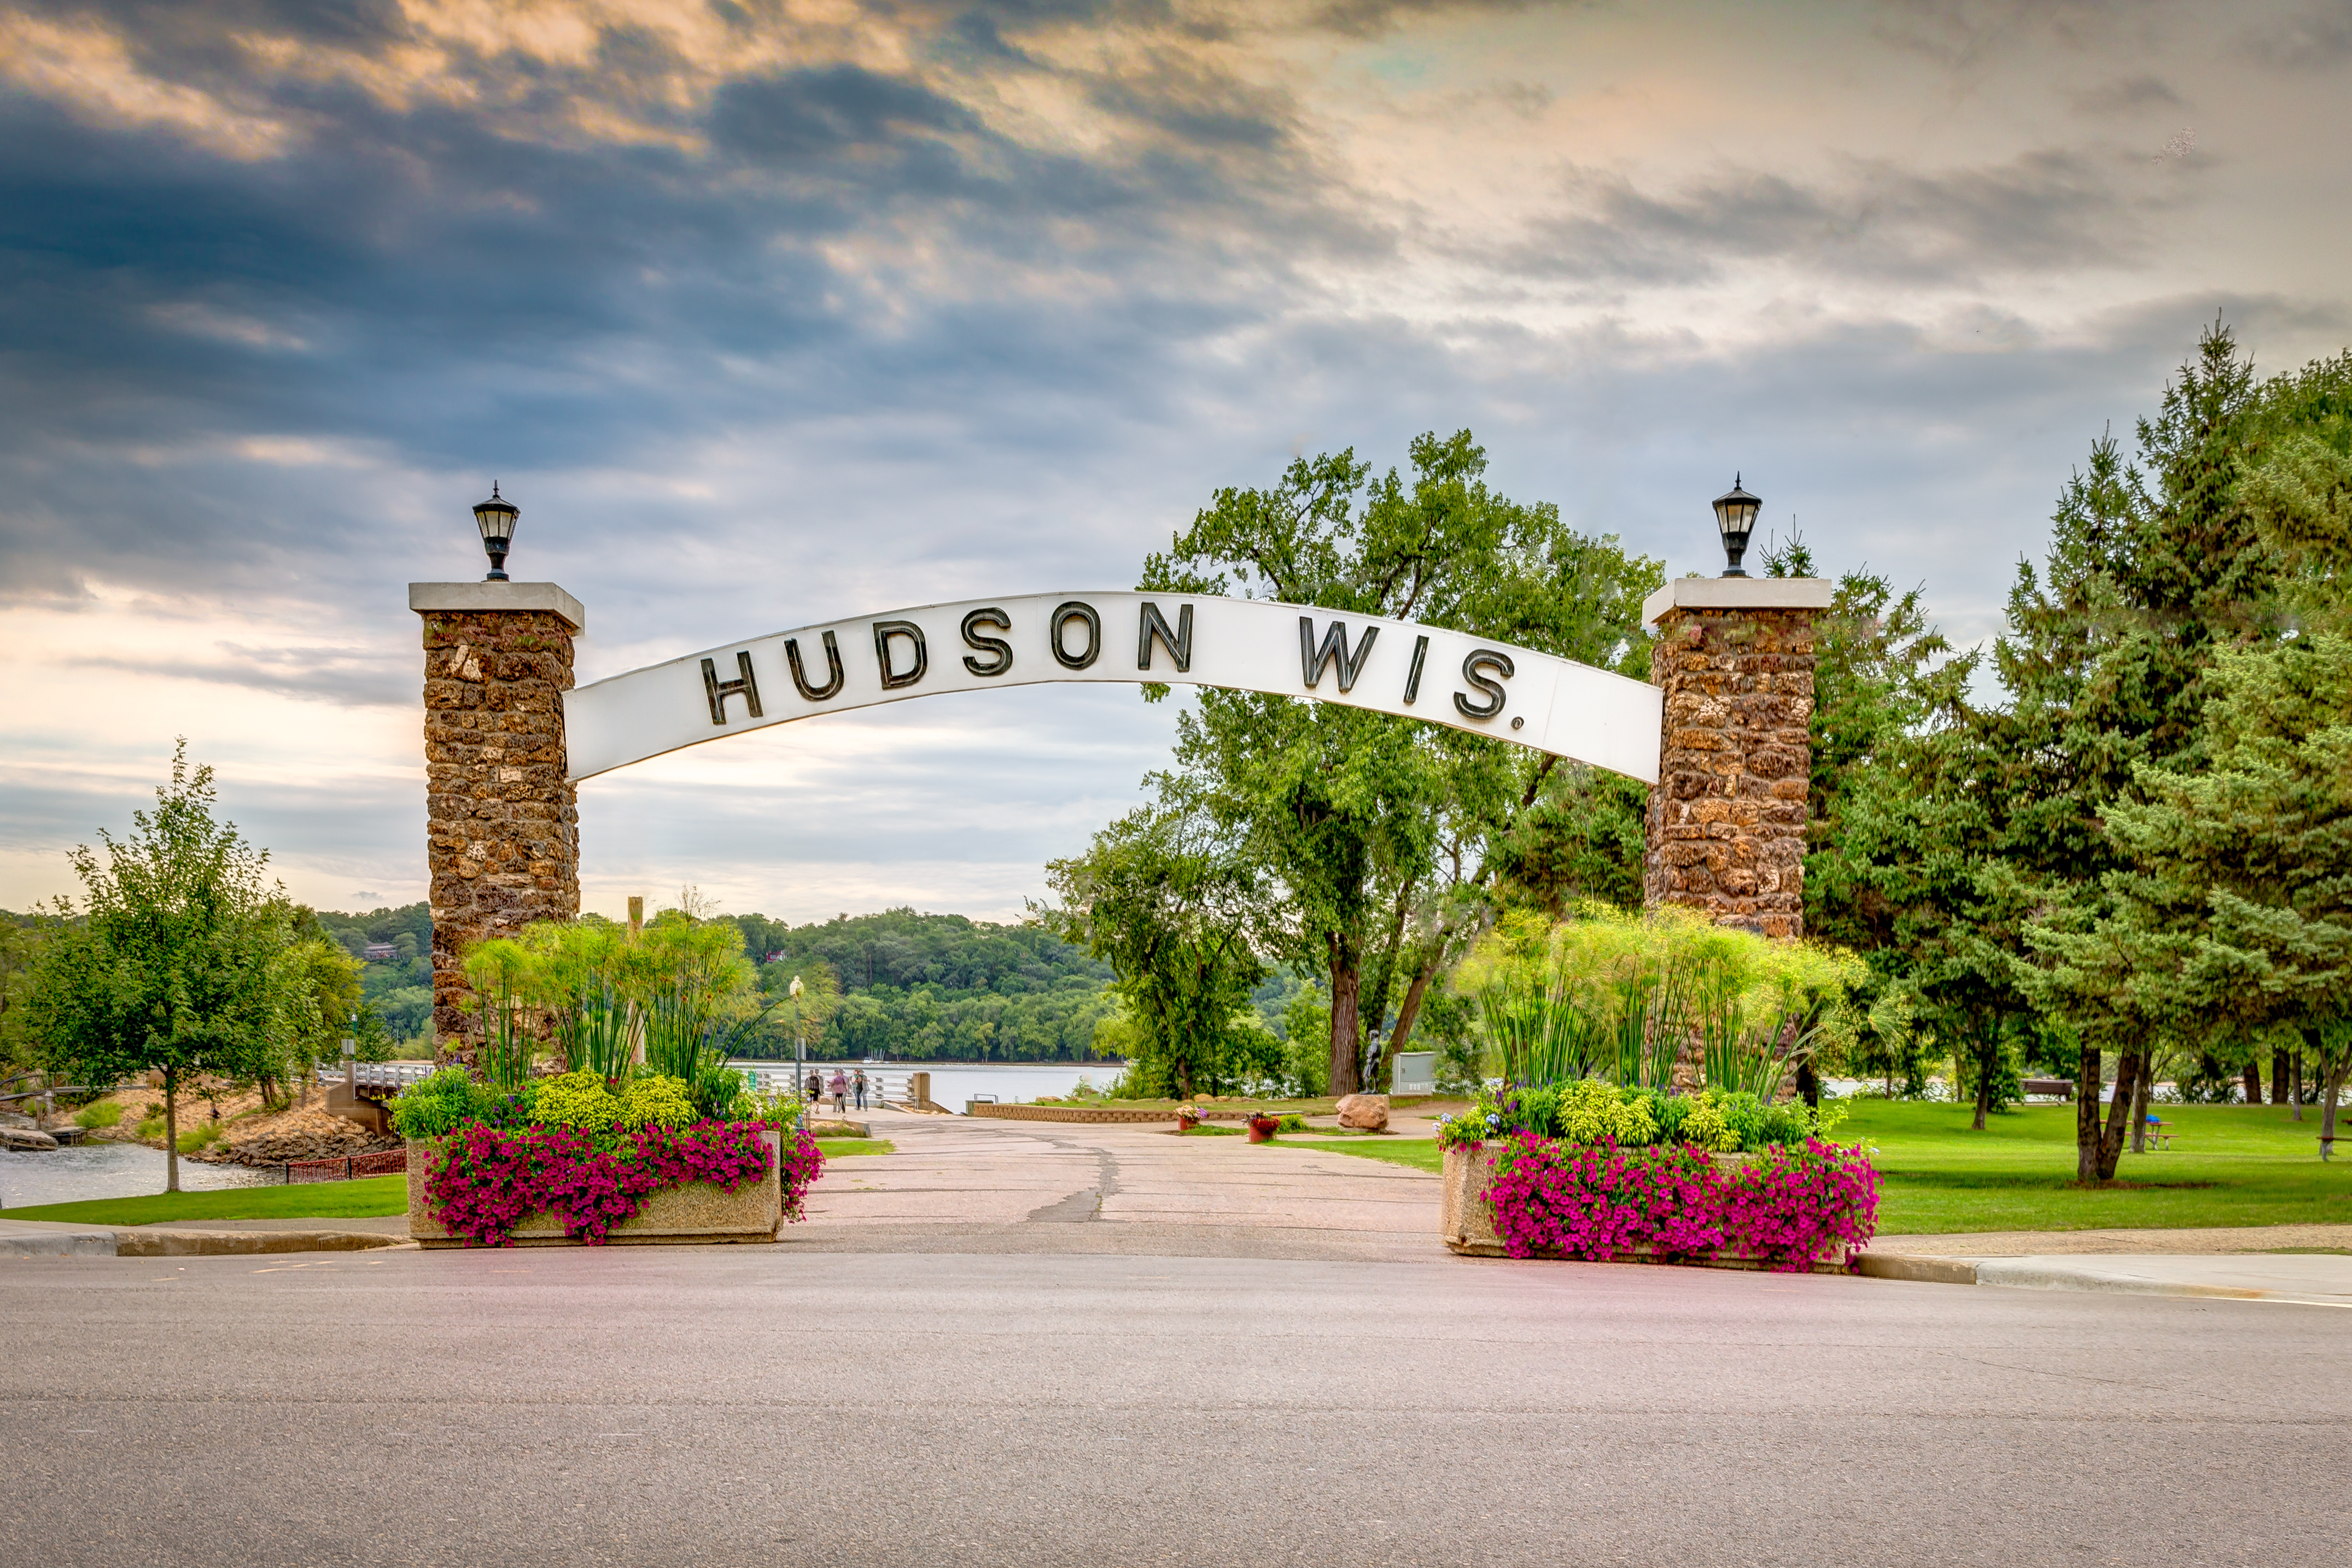 Hudson Area Chamber of Commerce & Tourism | Travel Wisconsin